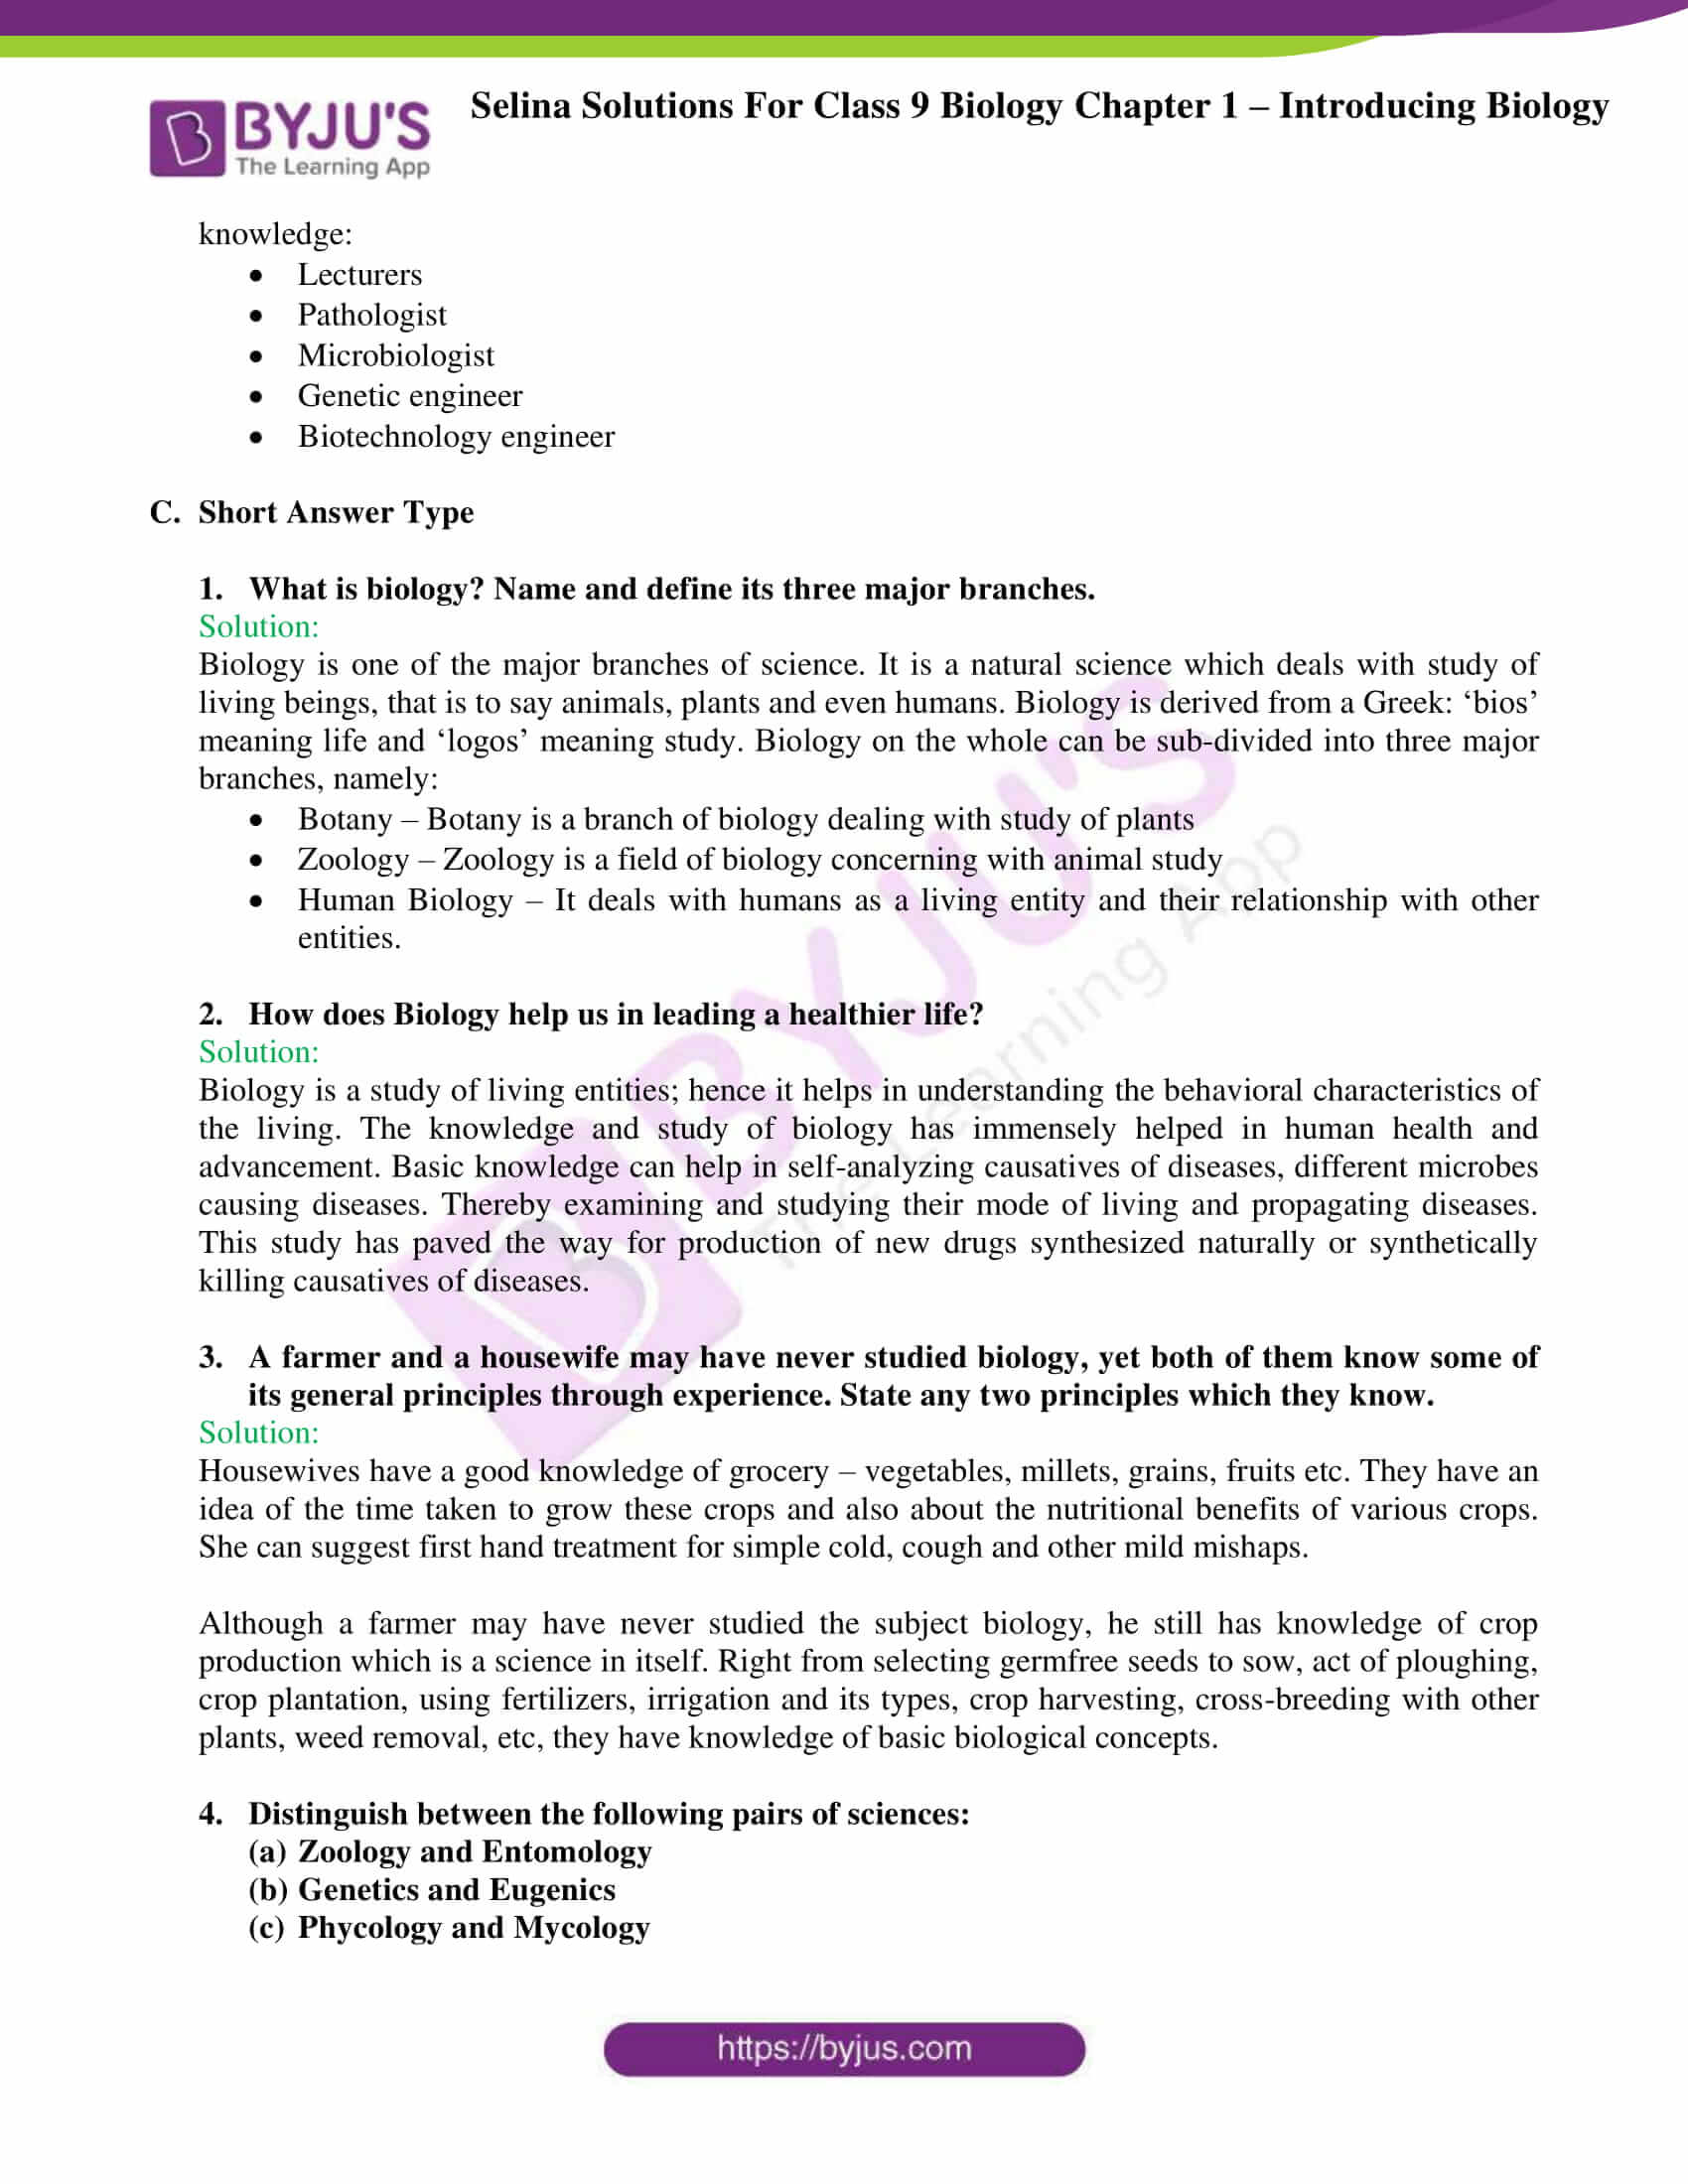 Selina Solutions For Class 9 Biology Chapter 1 Introducing Biology part 4